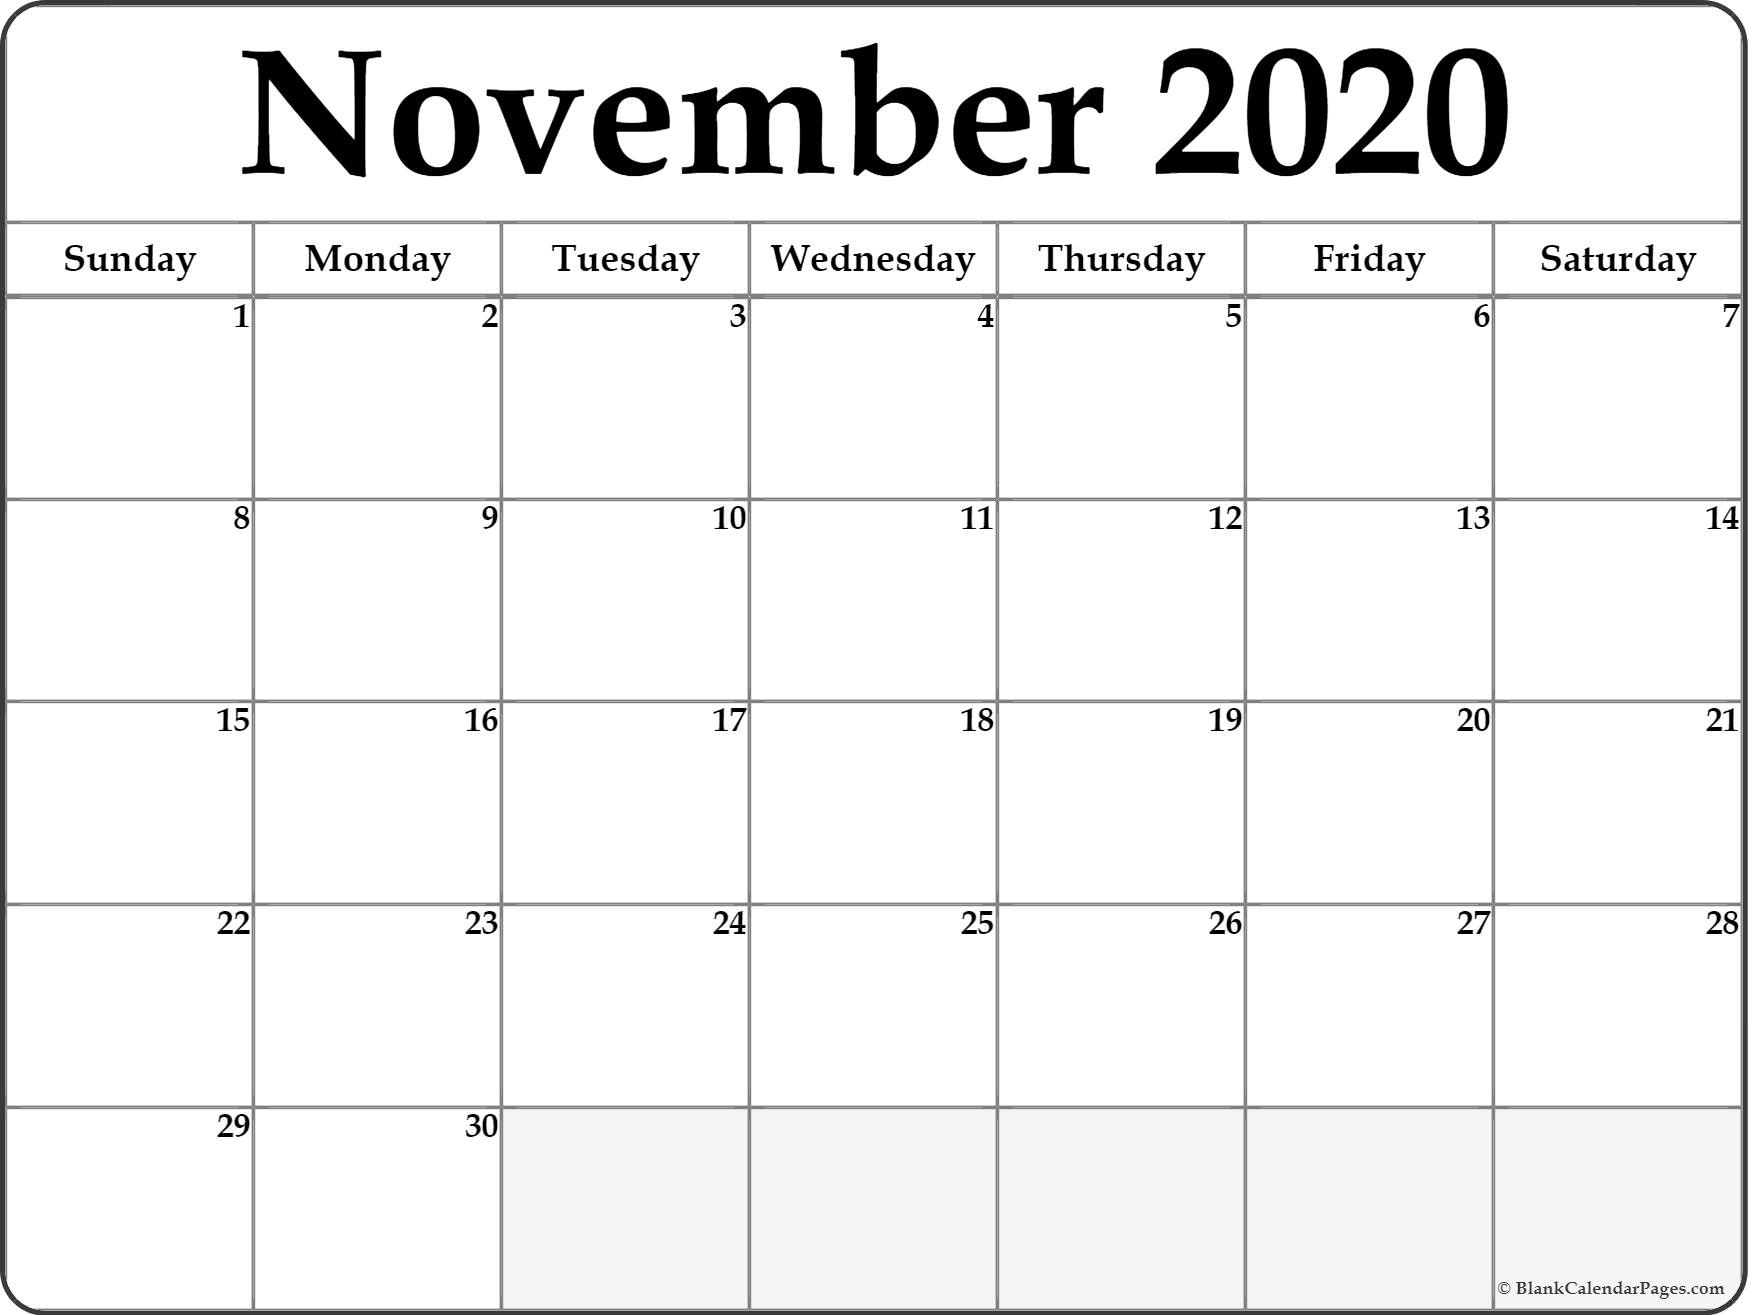 November 2020 Calendar | Free Printable Monthly Calendars